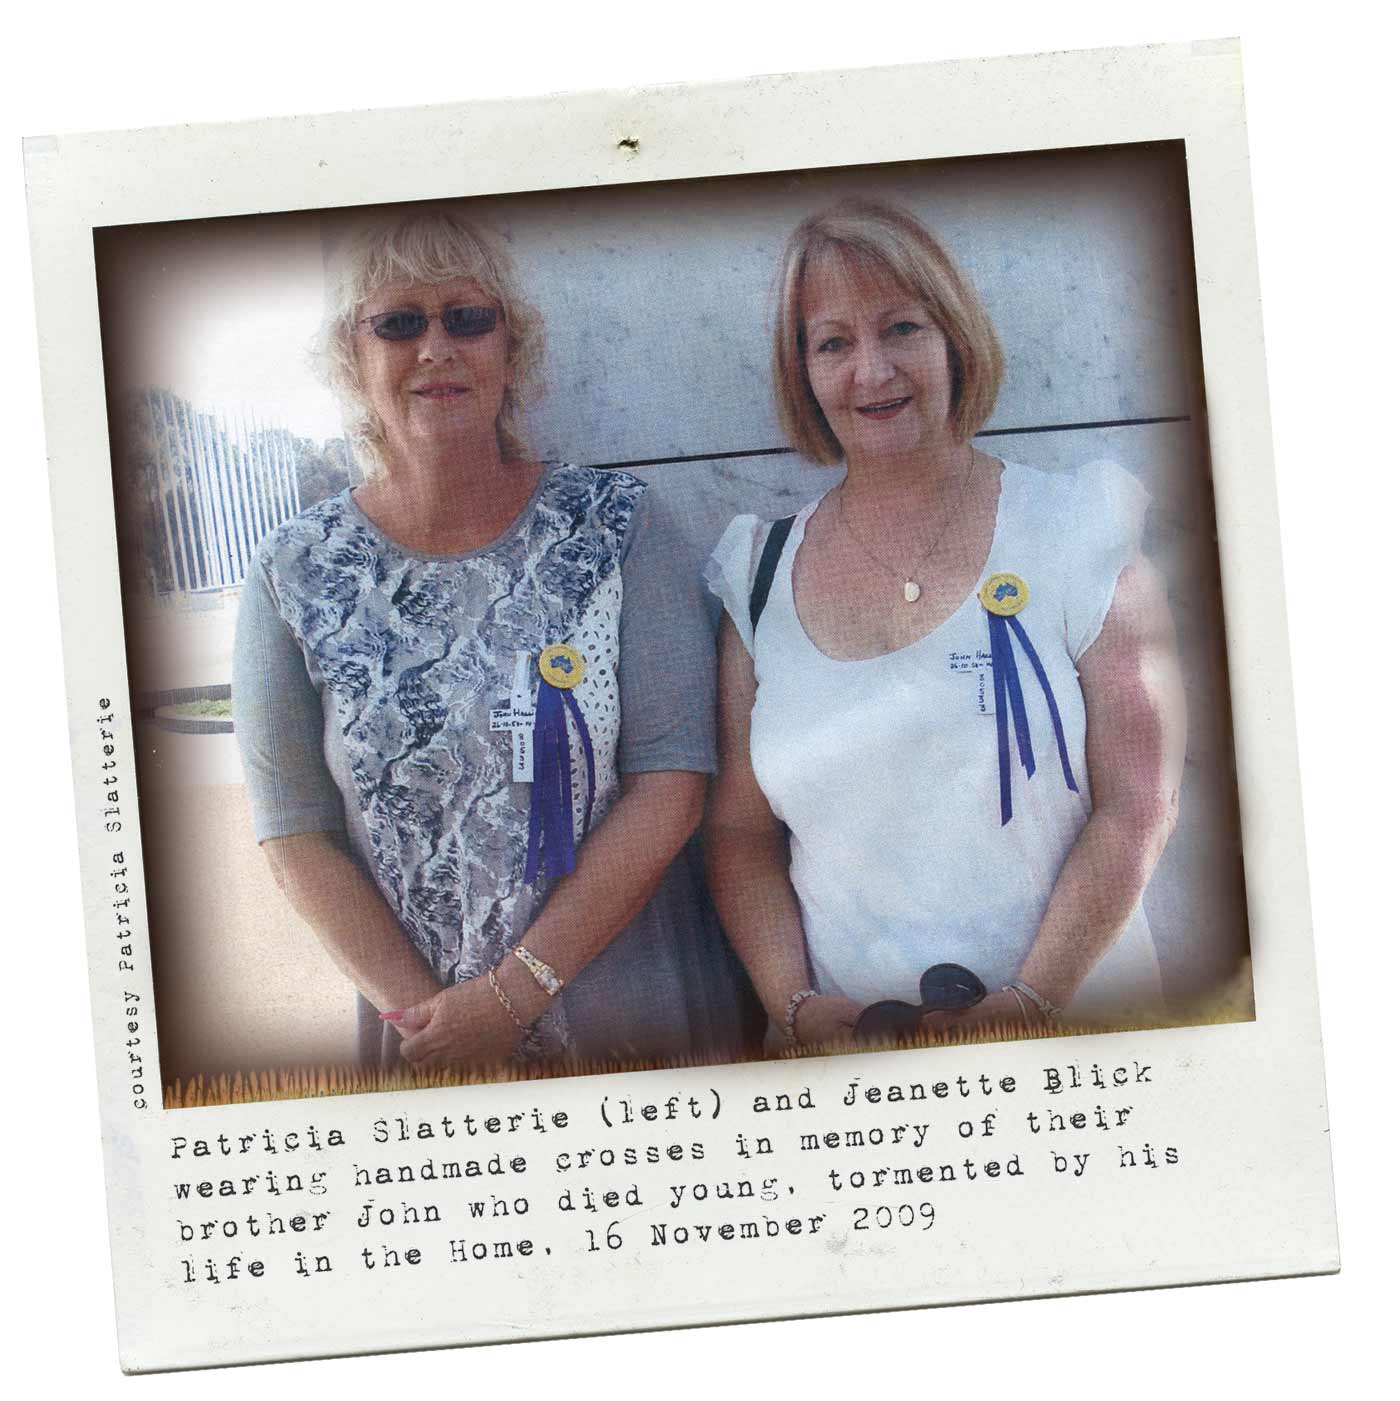 A colour Polaroid image of two women wearing badges and blue ribbons pinned to their shirts. Typewritten text below reads 'Patricia Slatterie (left) and Jeanette Blick wearing handmade crosses in memory of their brother John who died young, tormented by his life in the Home, 16 November 2009.' 'Courtesy Patricia Slatterie' is typed along the left side. - click to view larger image